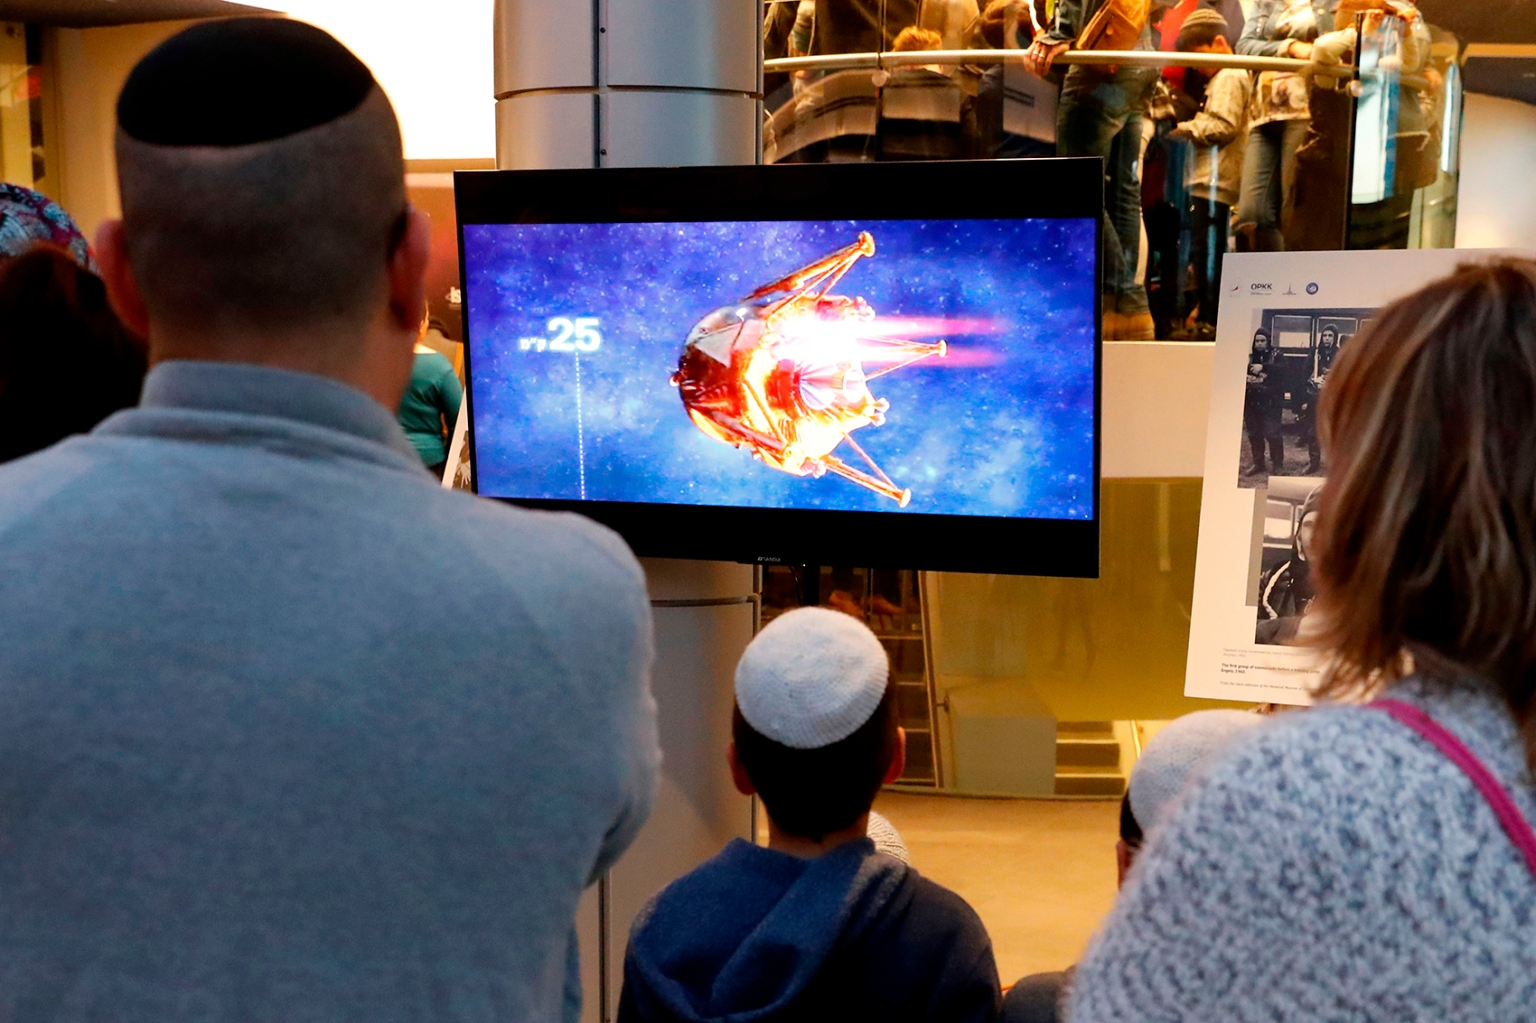 People watch a screen showing explanations of the landing of Israeli spacecraft, Beresheet's, at the Planetaya Planetarium in the Israeli city of Netanya before it crashed during landing on April 11. JACK GUEZ/AFP/Getty Images